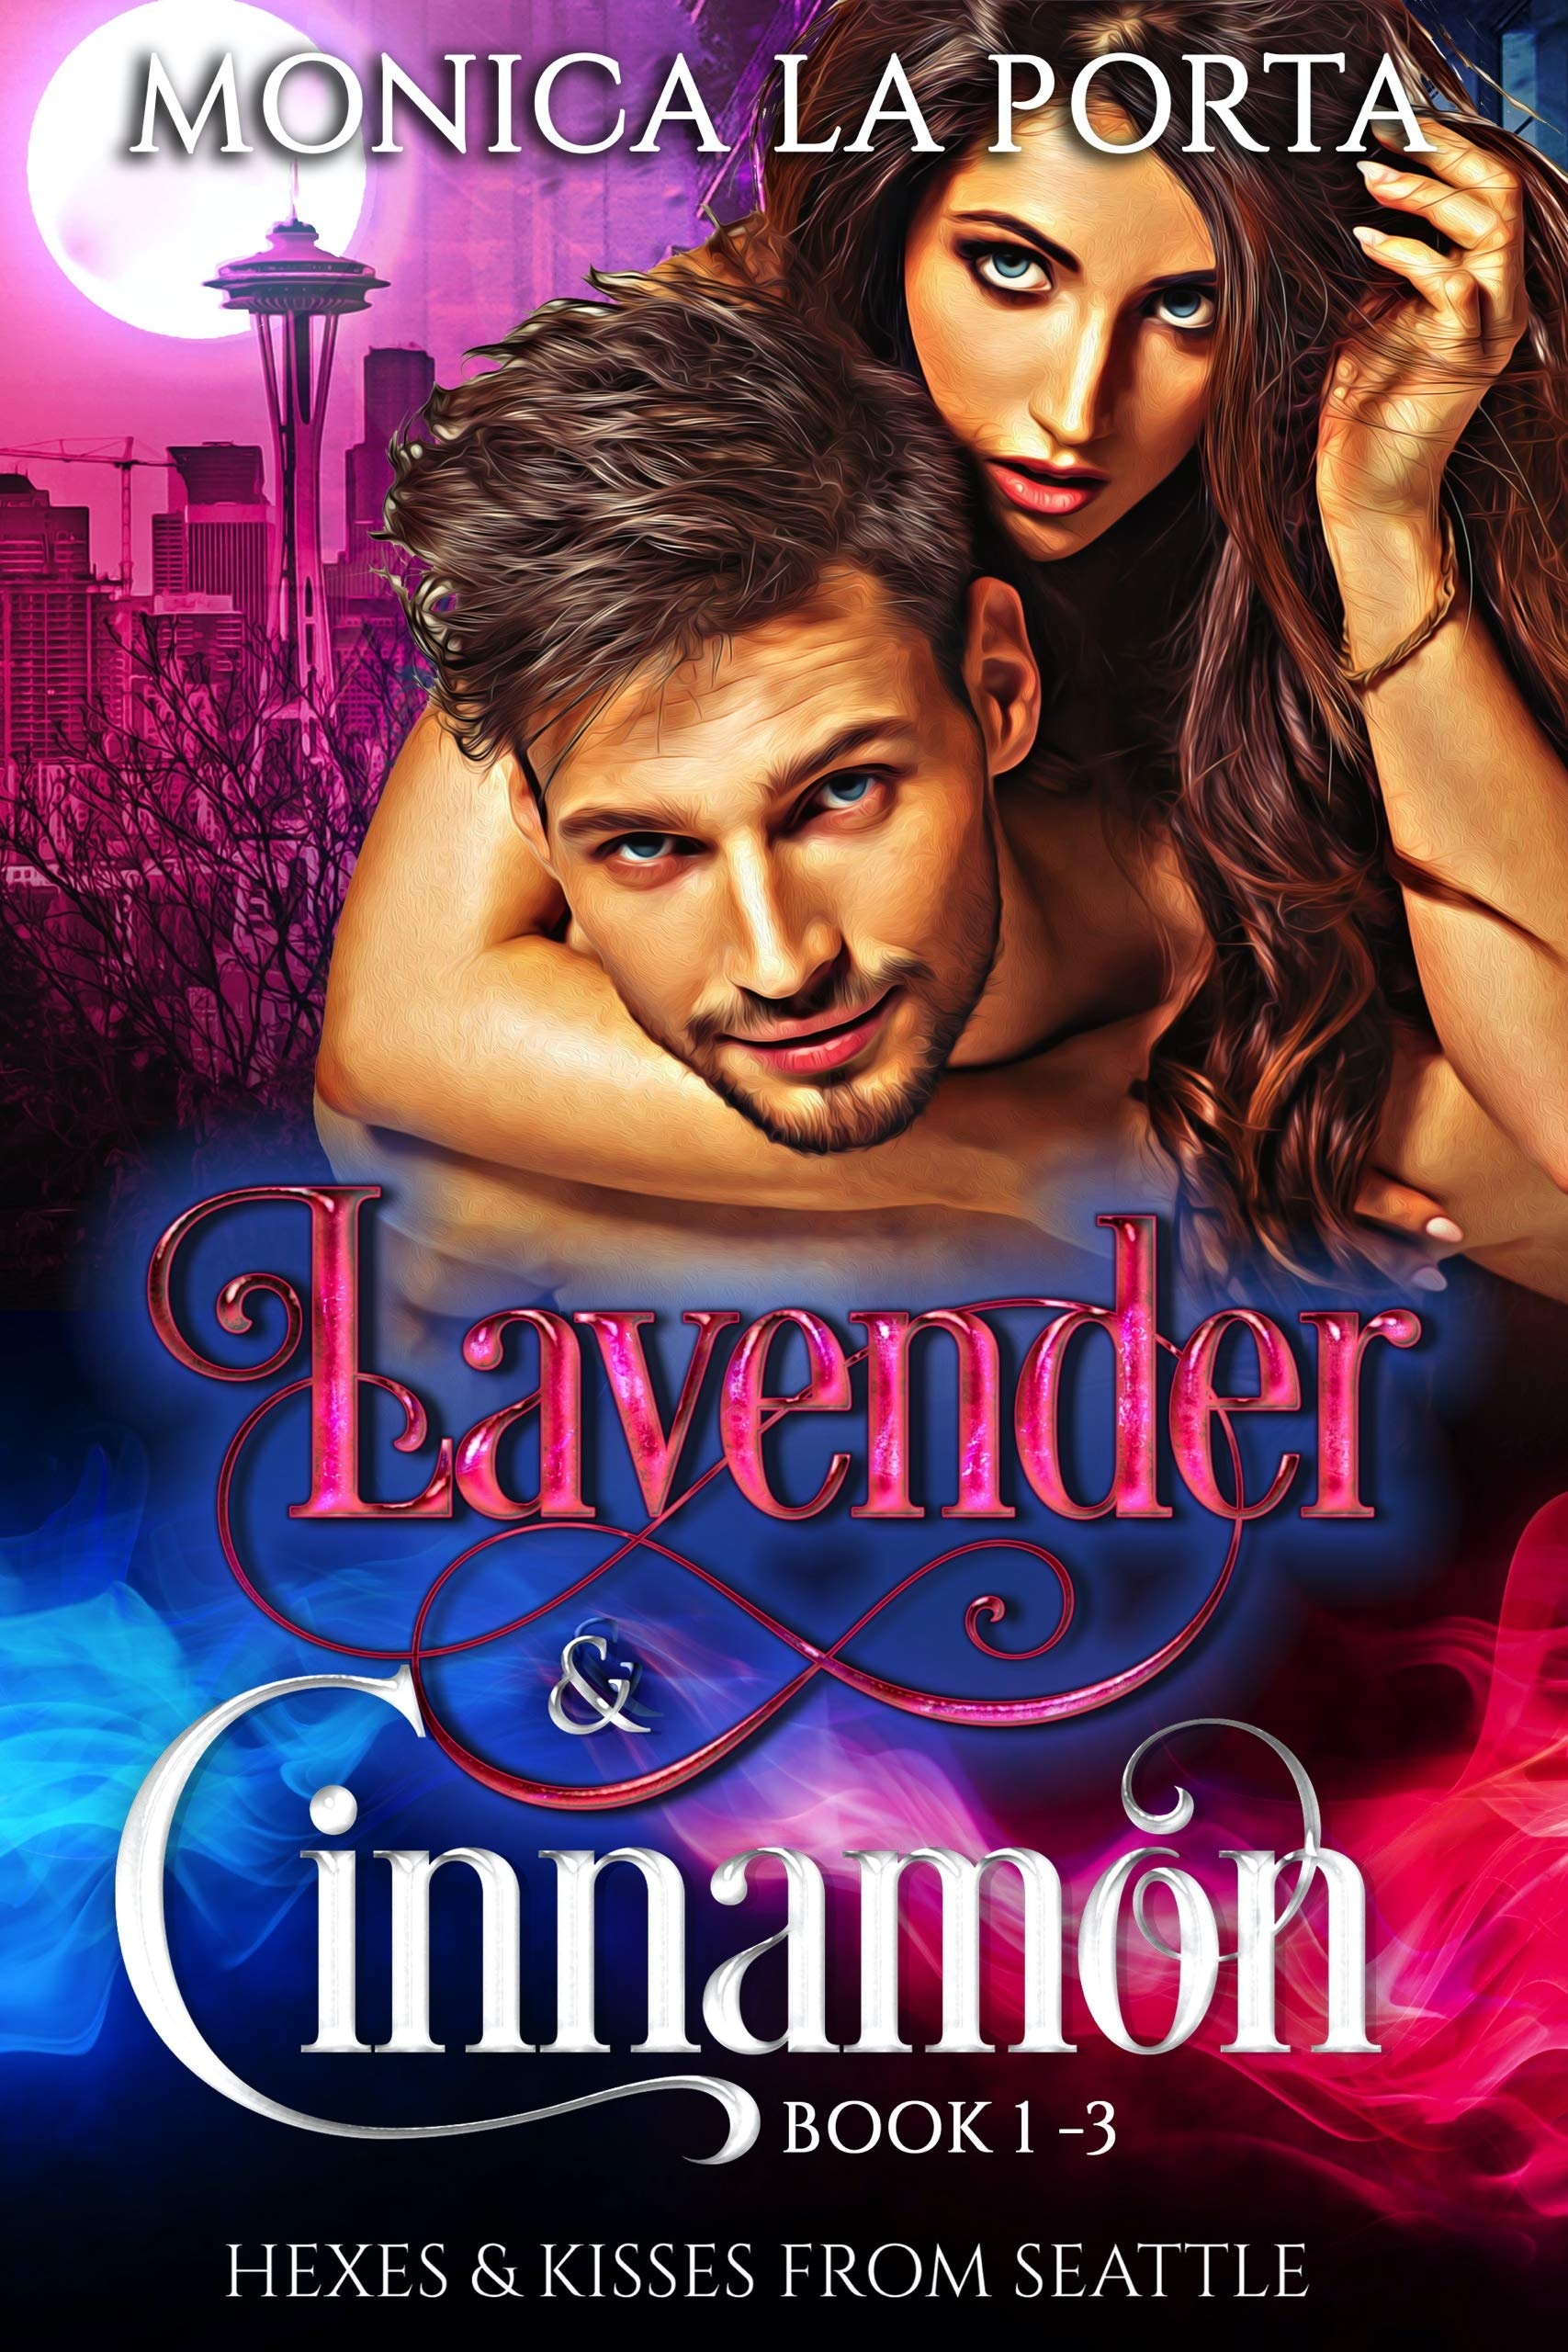 Lavender & Cinnamon Box Set: Books 1-3